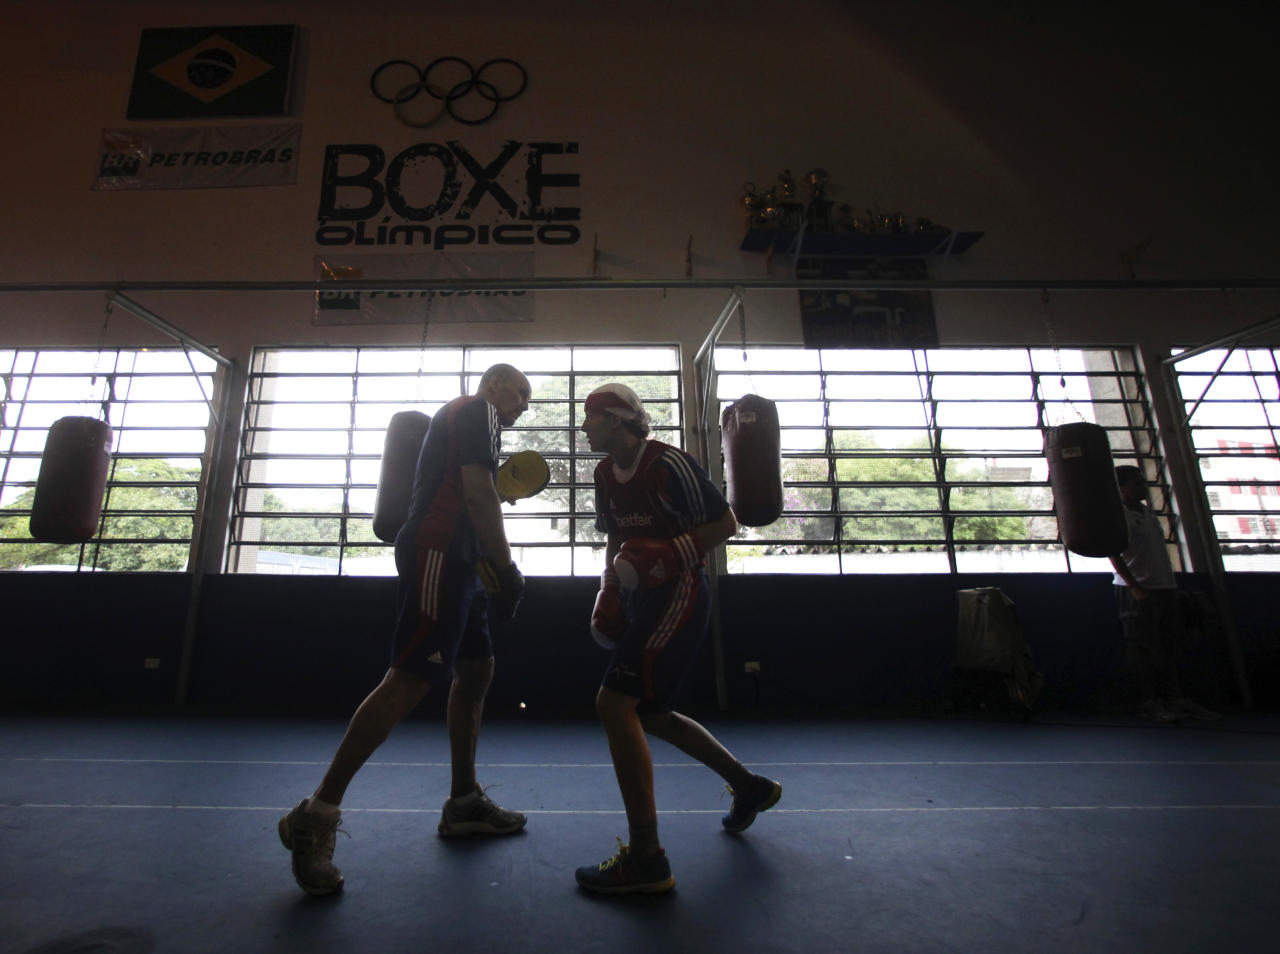 Great Britain's Olympic boxing coach Bob Dillon (L) practices with his boxer Amanda Coulson at the Santo Amaro club in Sao Paulo February 9, 2012. The women's boxing team from Great Britain is in Brazil to train with the Brazilian team between January 29 and February 12. According to the team, this exchange of experience with the South American boxers is part of their strategy for the London Olympics 2012, where women's boxing will be making its Olympic debut. Picture taken February 9, 2012.